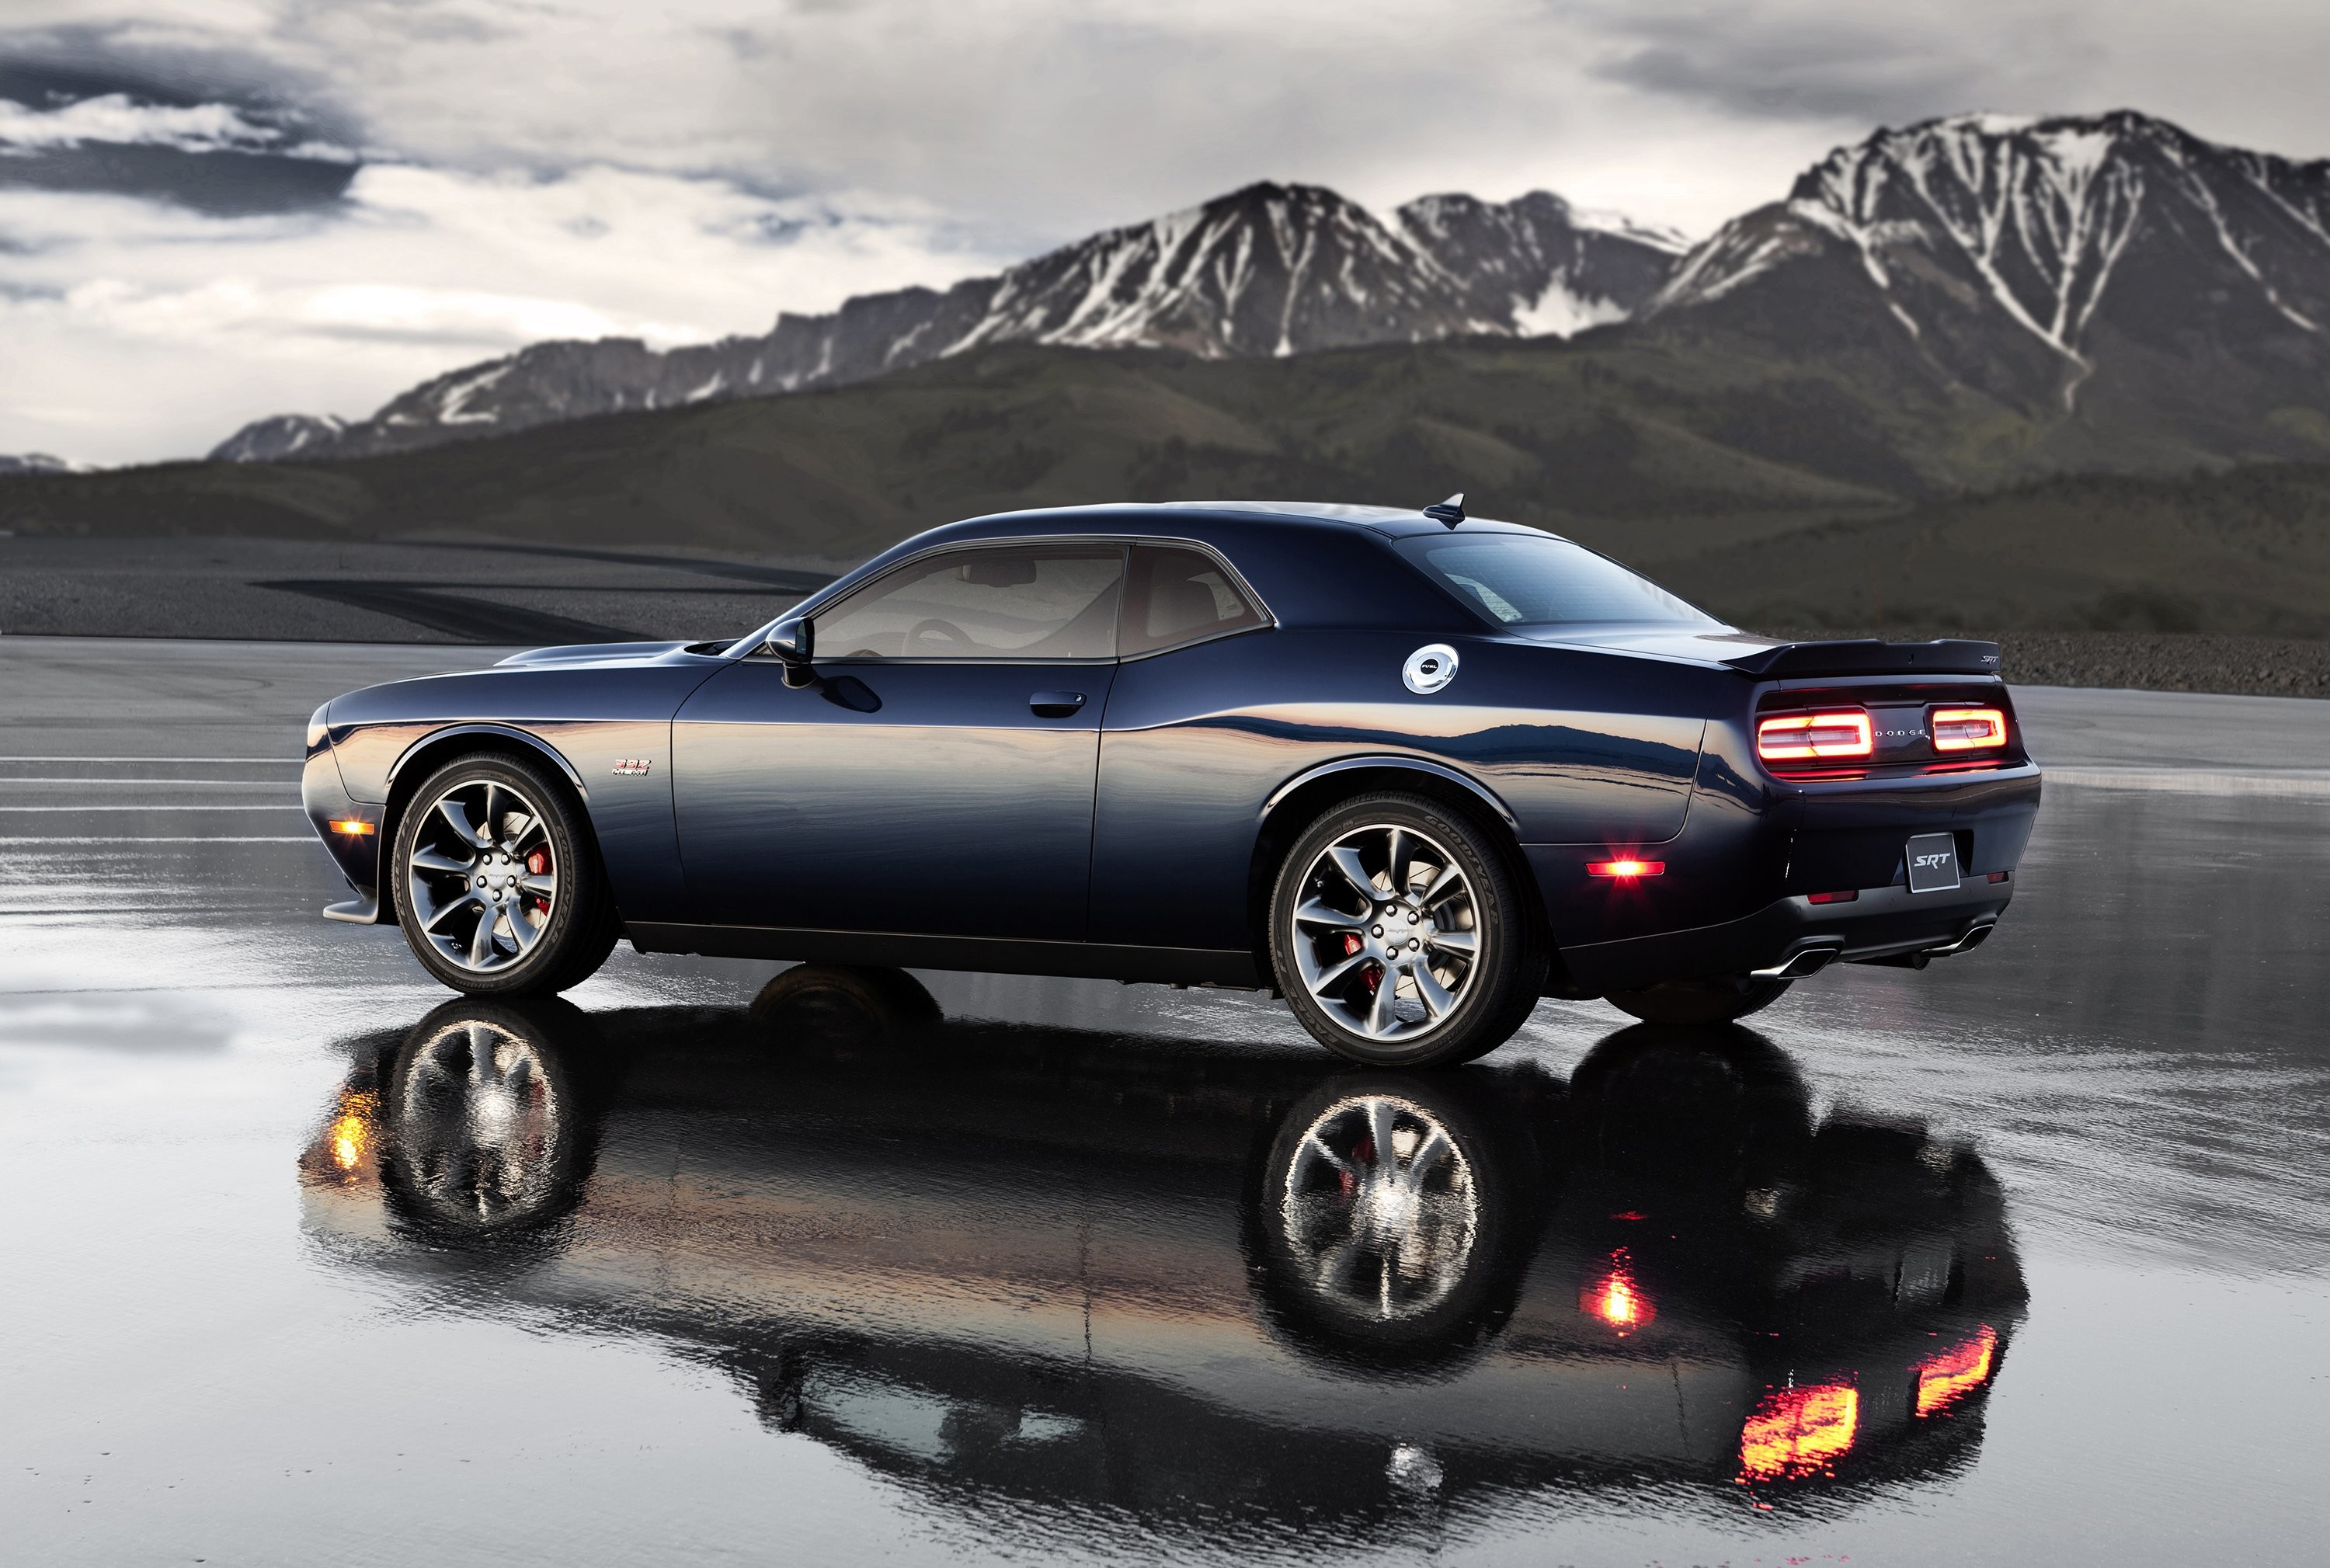 3000x2019 Dodge Challenger Srt Hellcat Wallpaper  355586